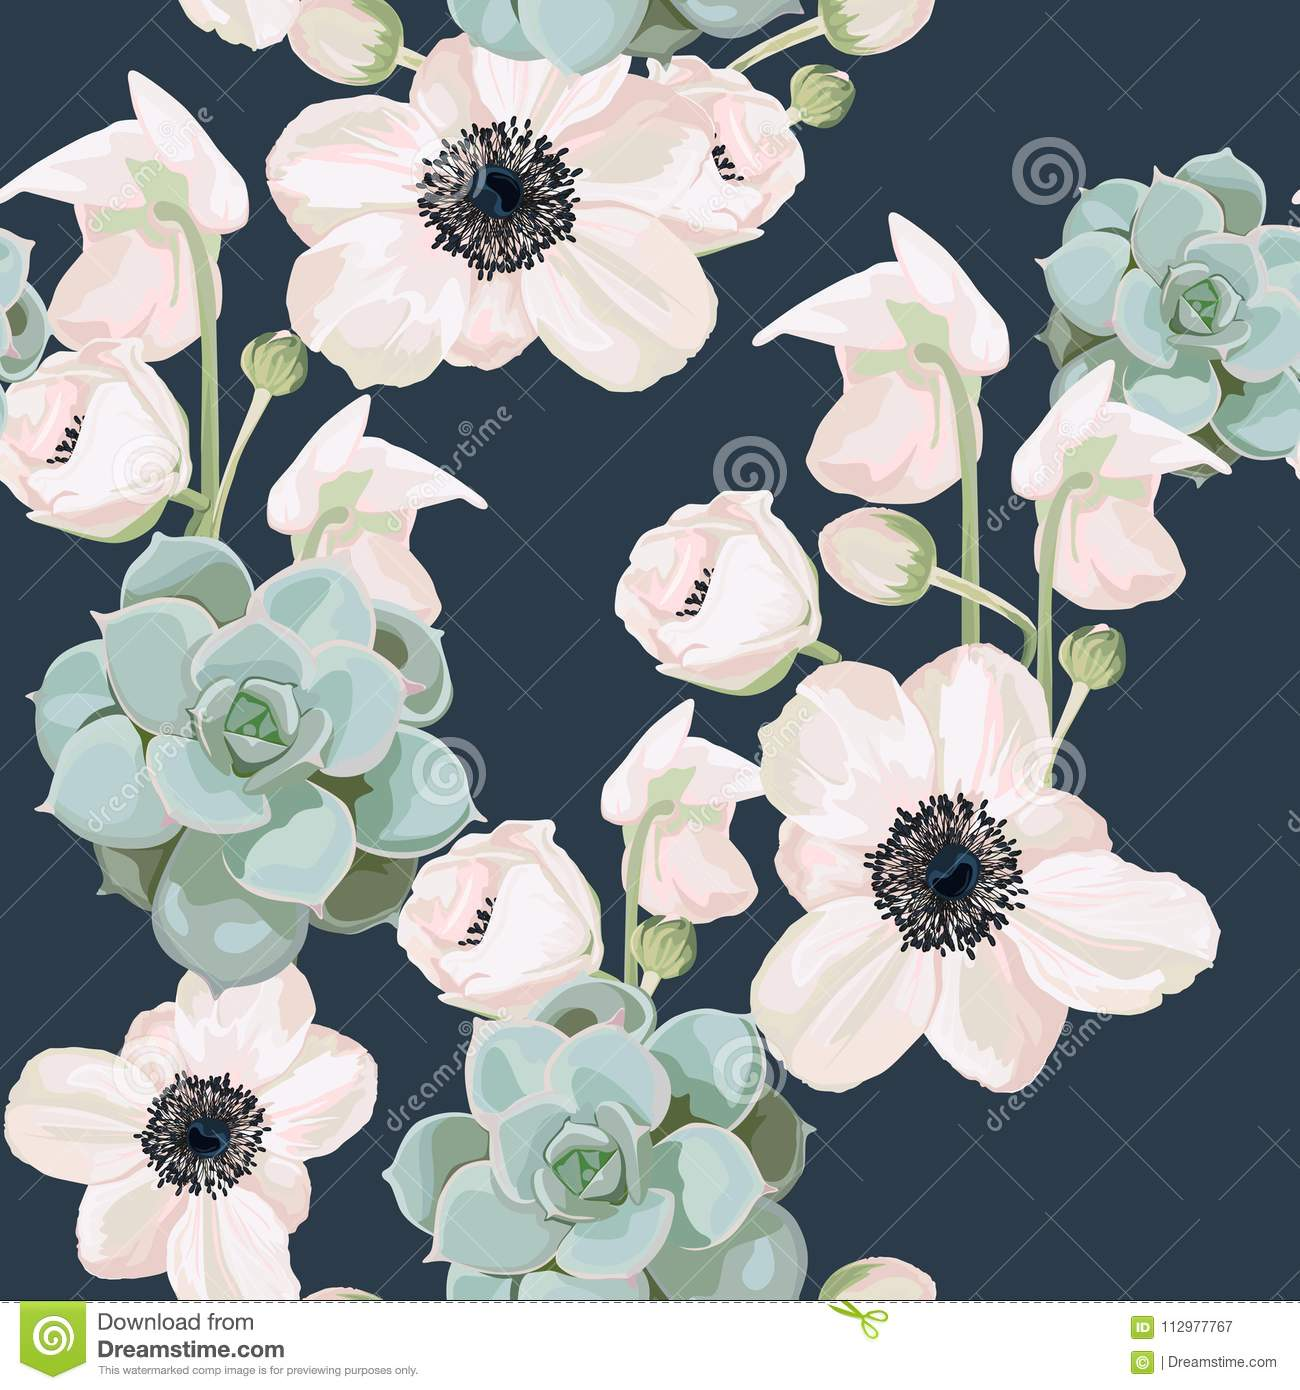 Seamless pattern with anemone and succulent background.